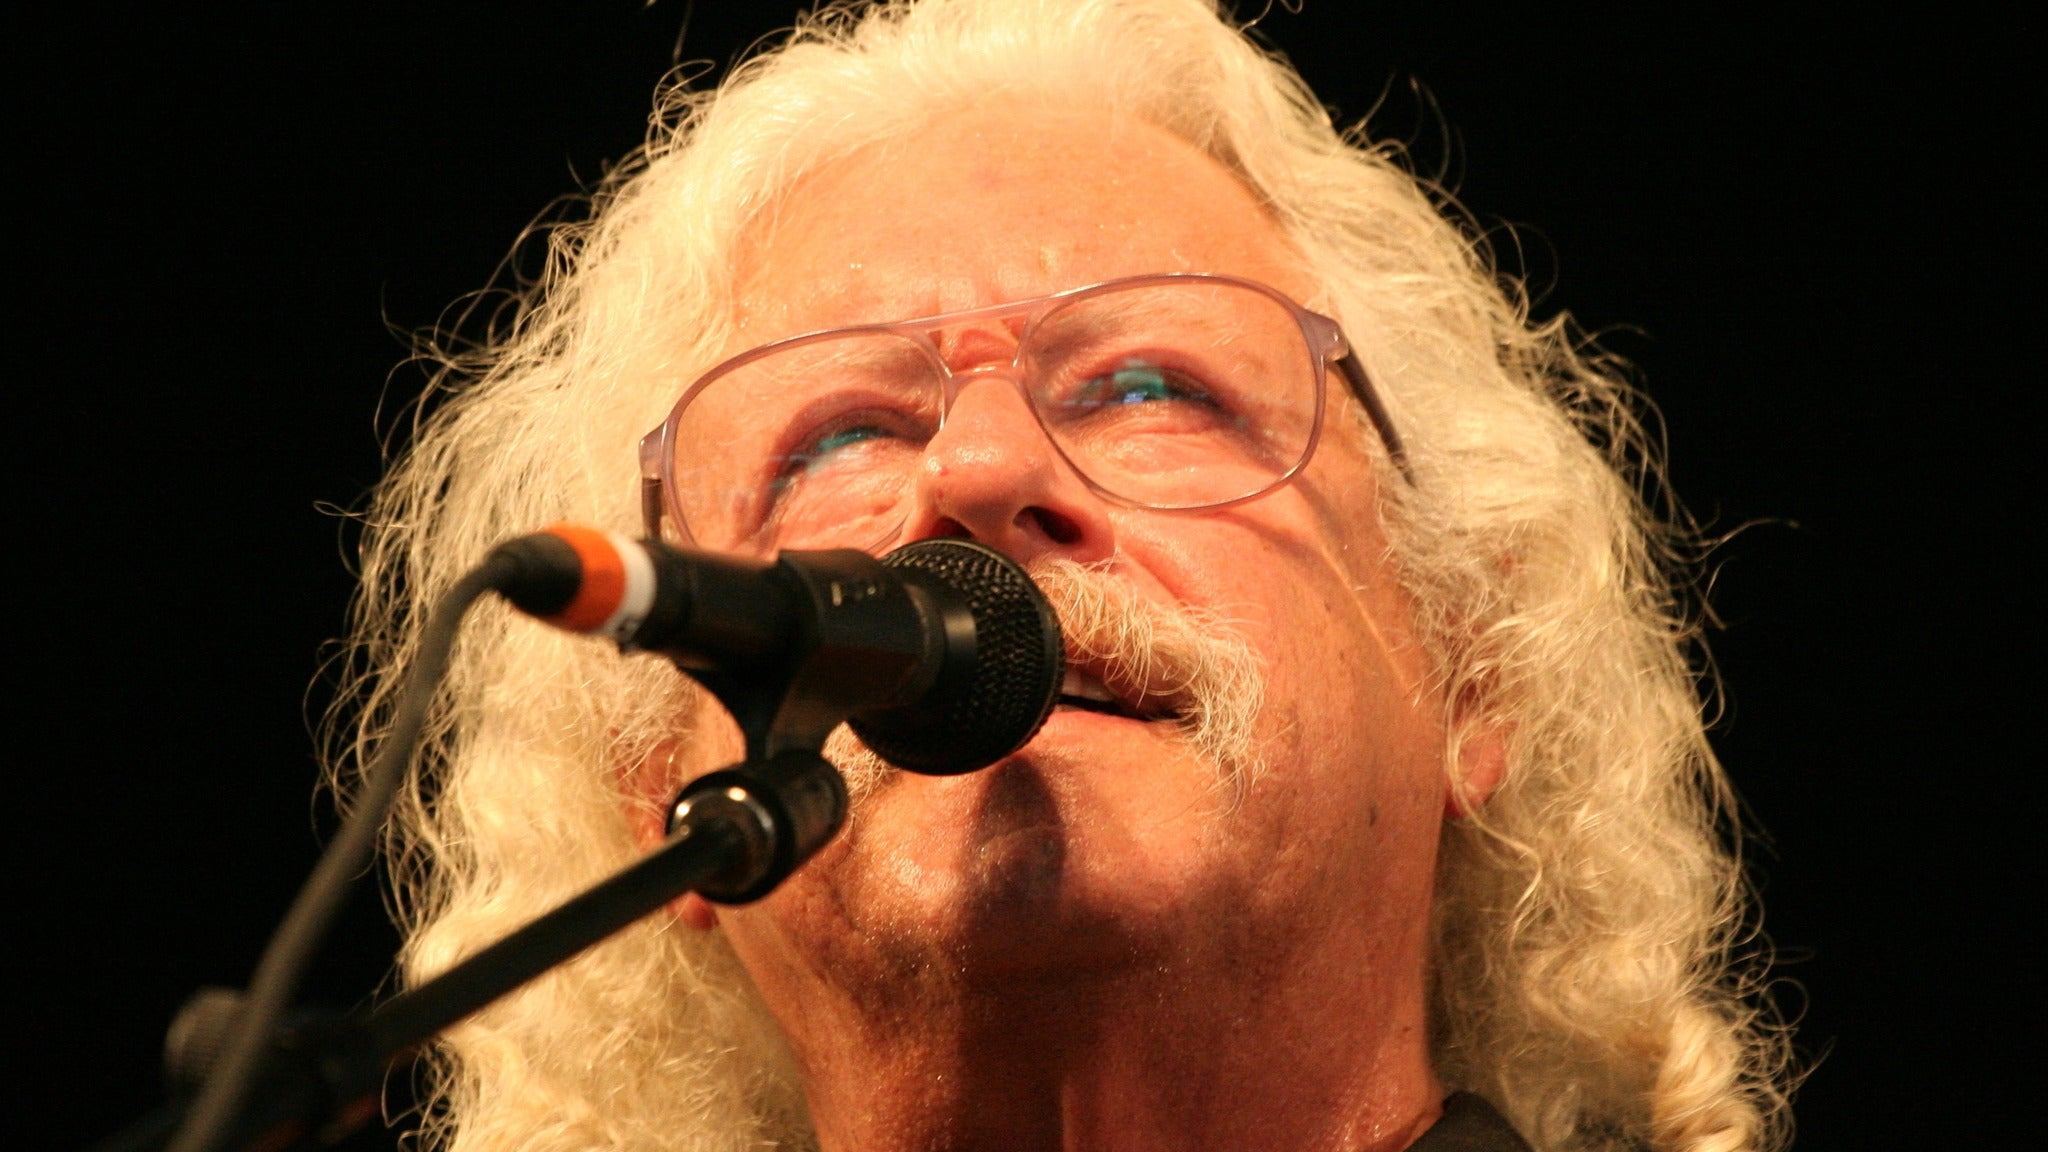 Arlo Guthrie at Yardley Hall Carlsen Center - KS